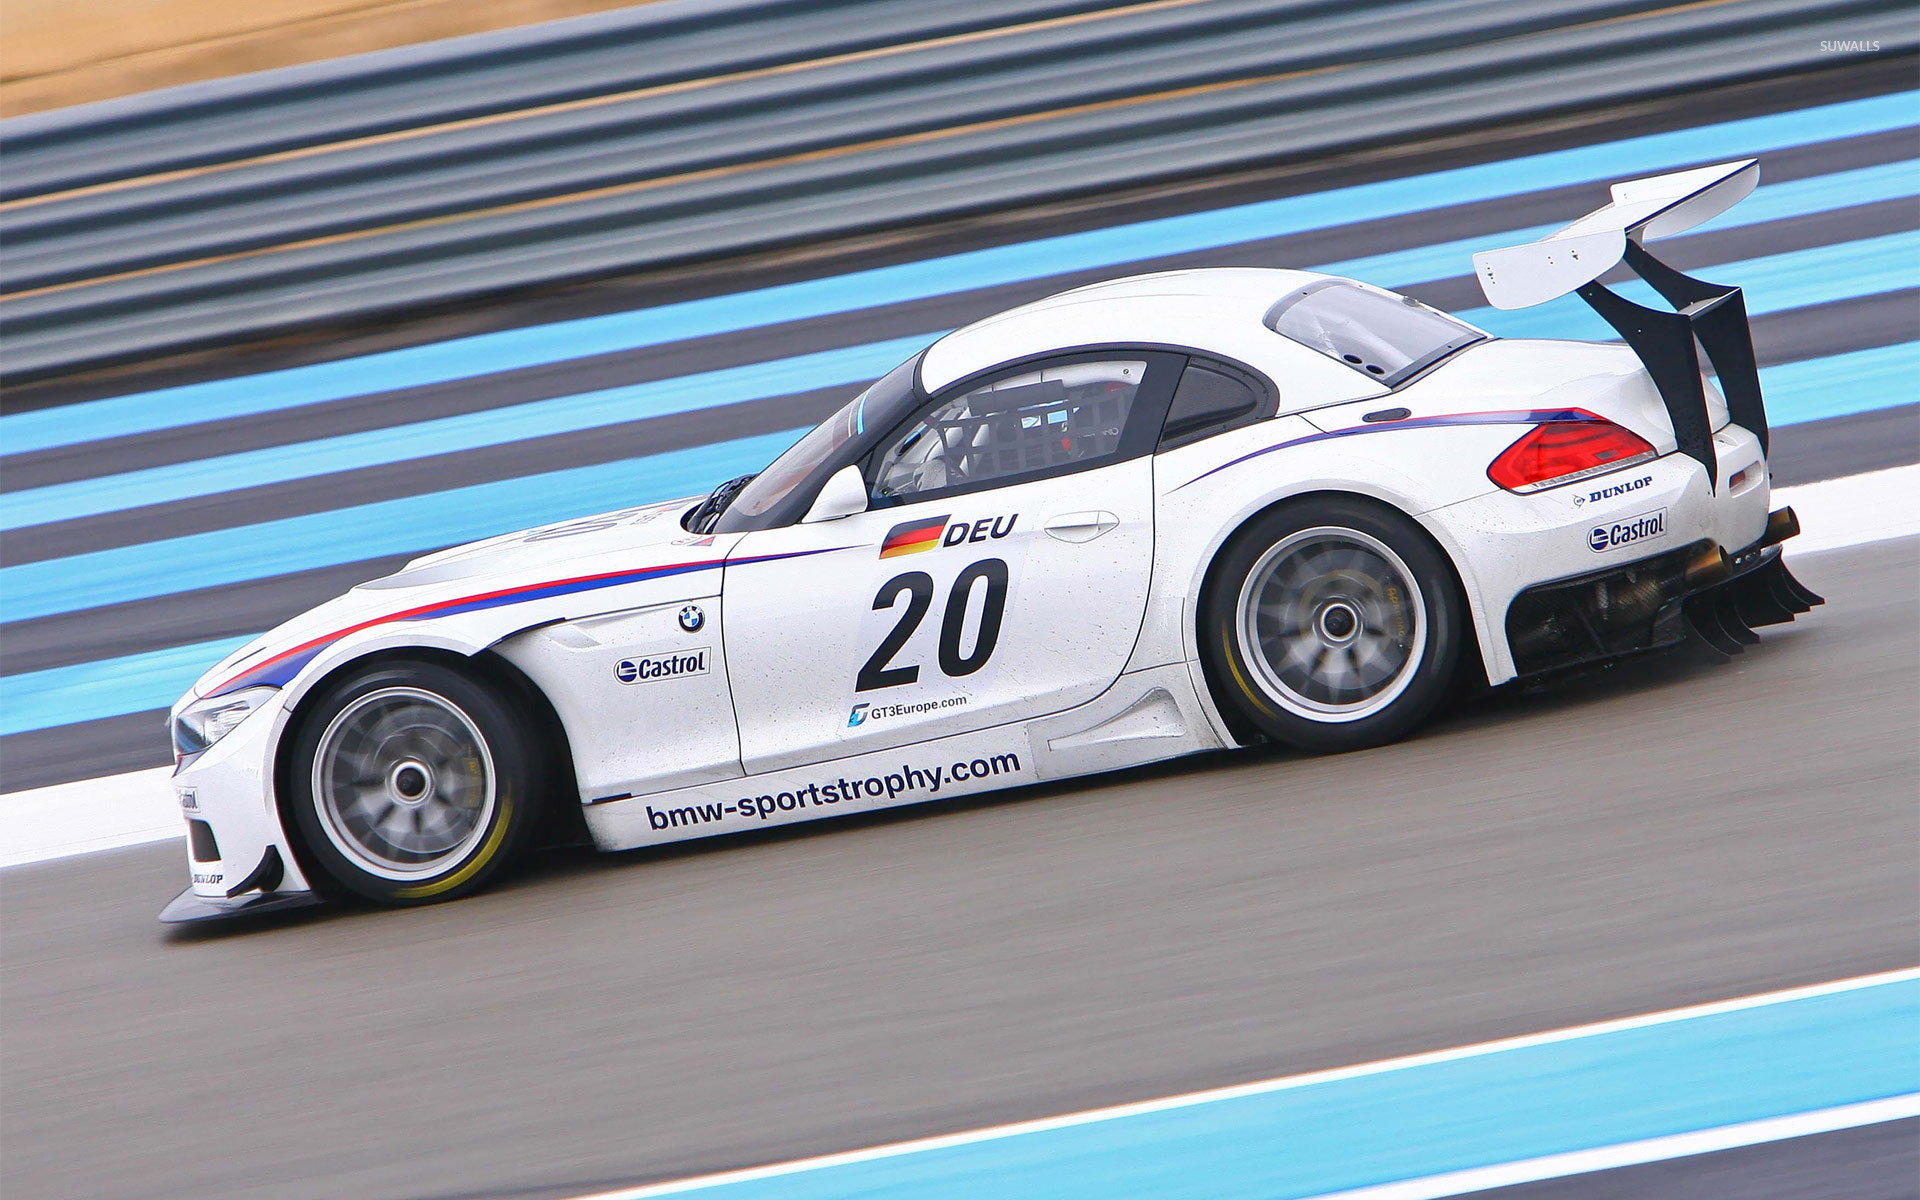 bmw z4 gt3 wallpapers - photo #11